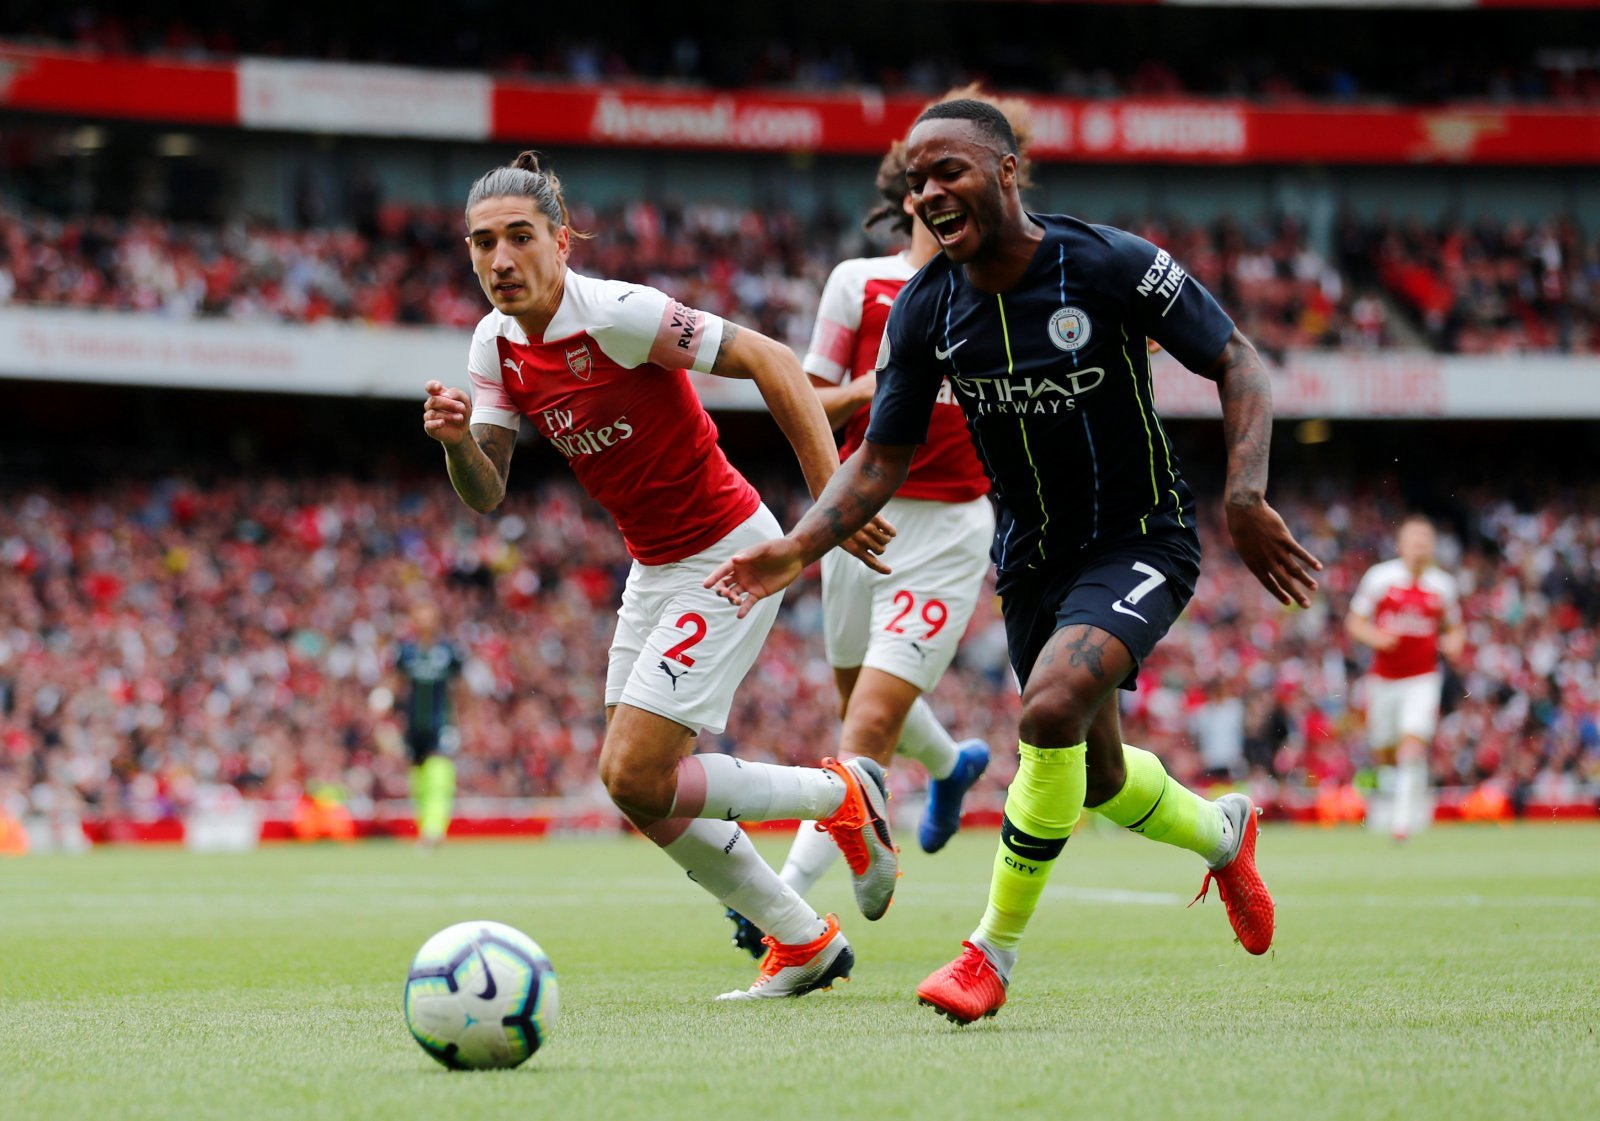 Manchester United should make outrageous attempt to poach Raheem Sterling